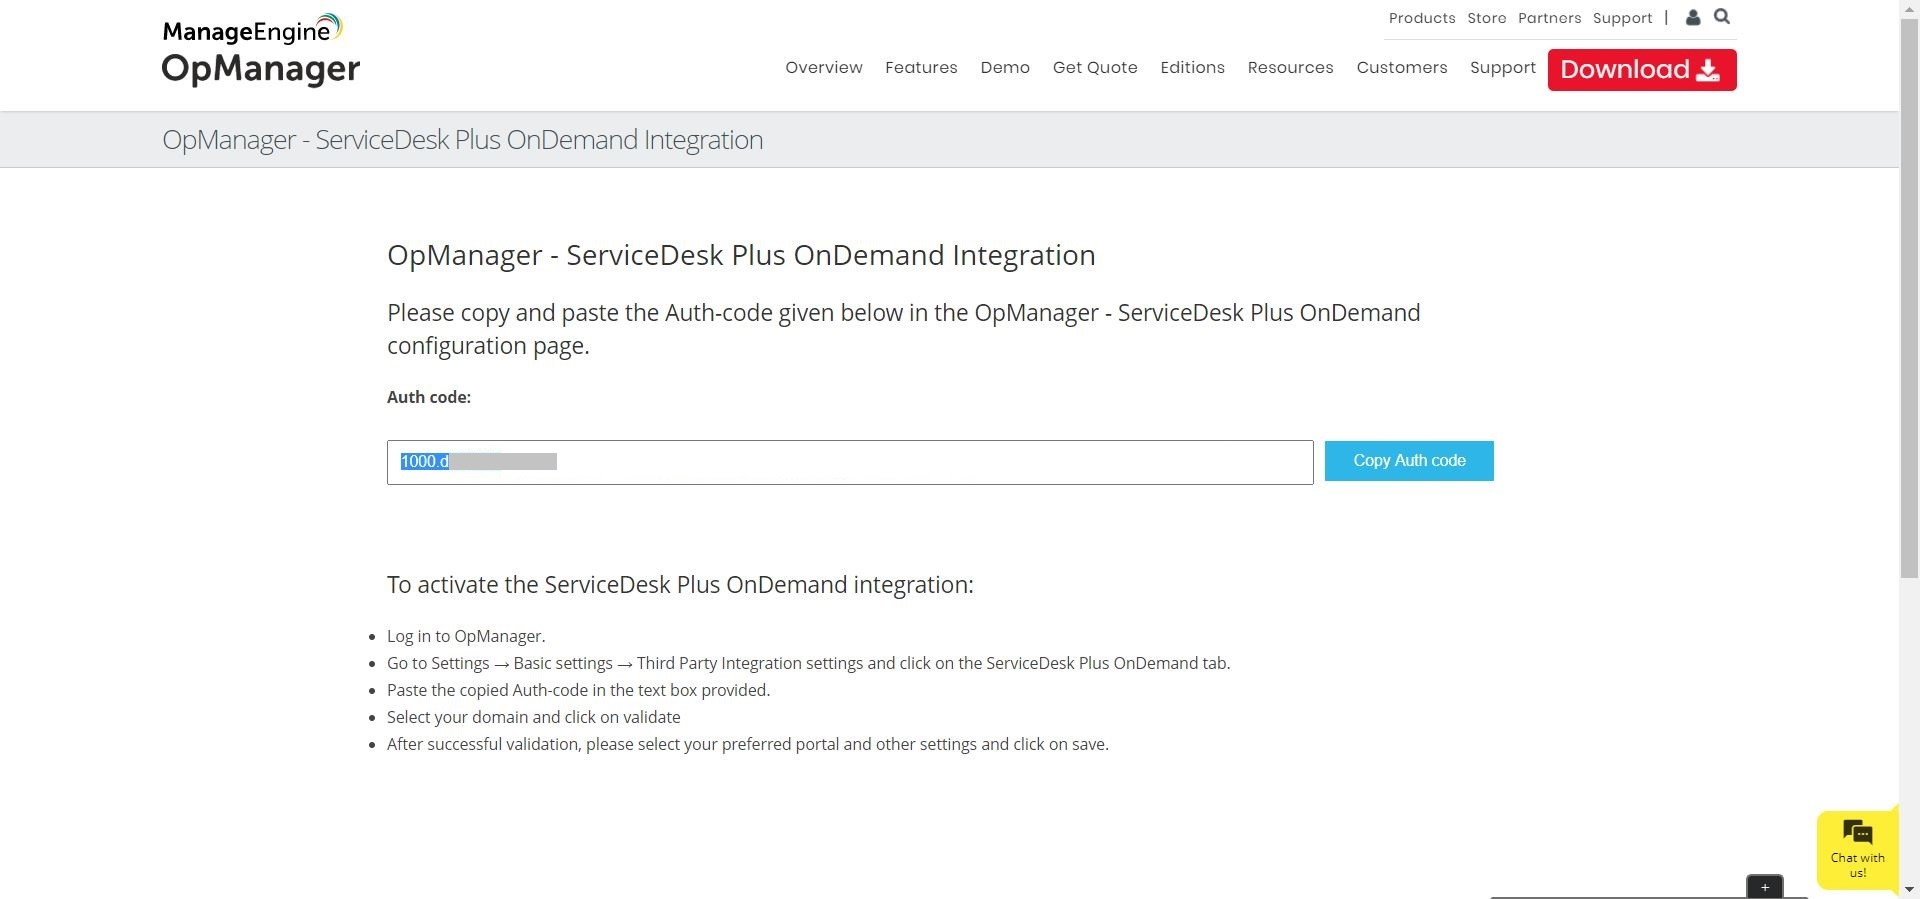 ServiceDesk Plus (SDP) OnDemand Integration with OpManager - ManageEngine